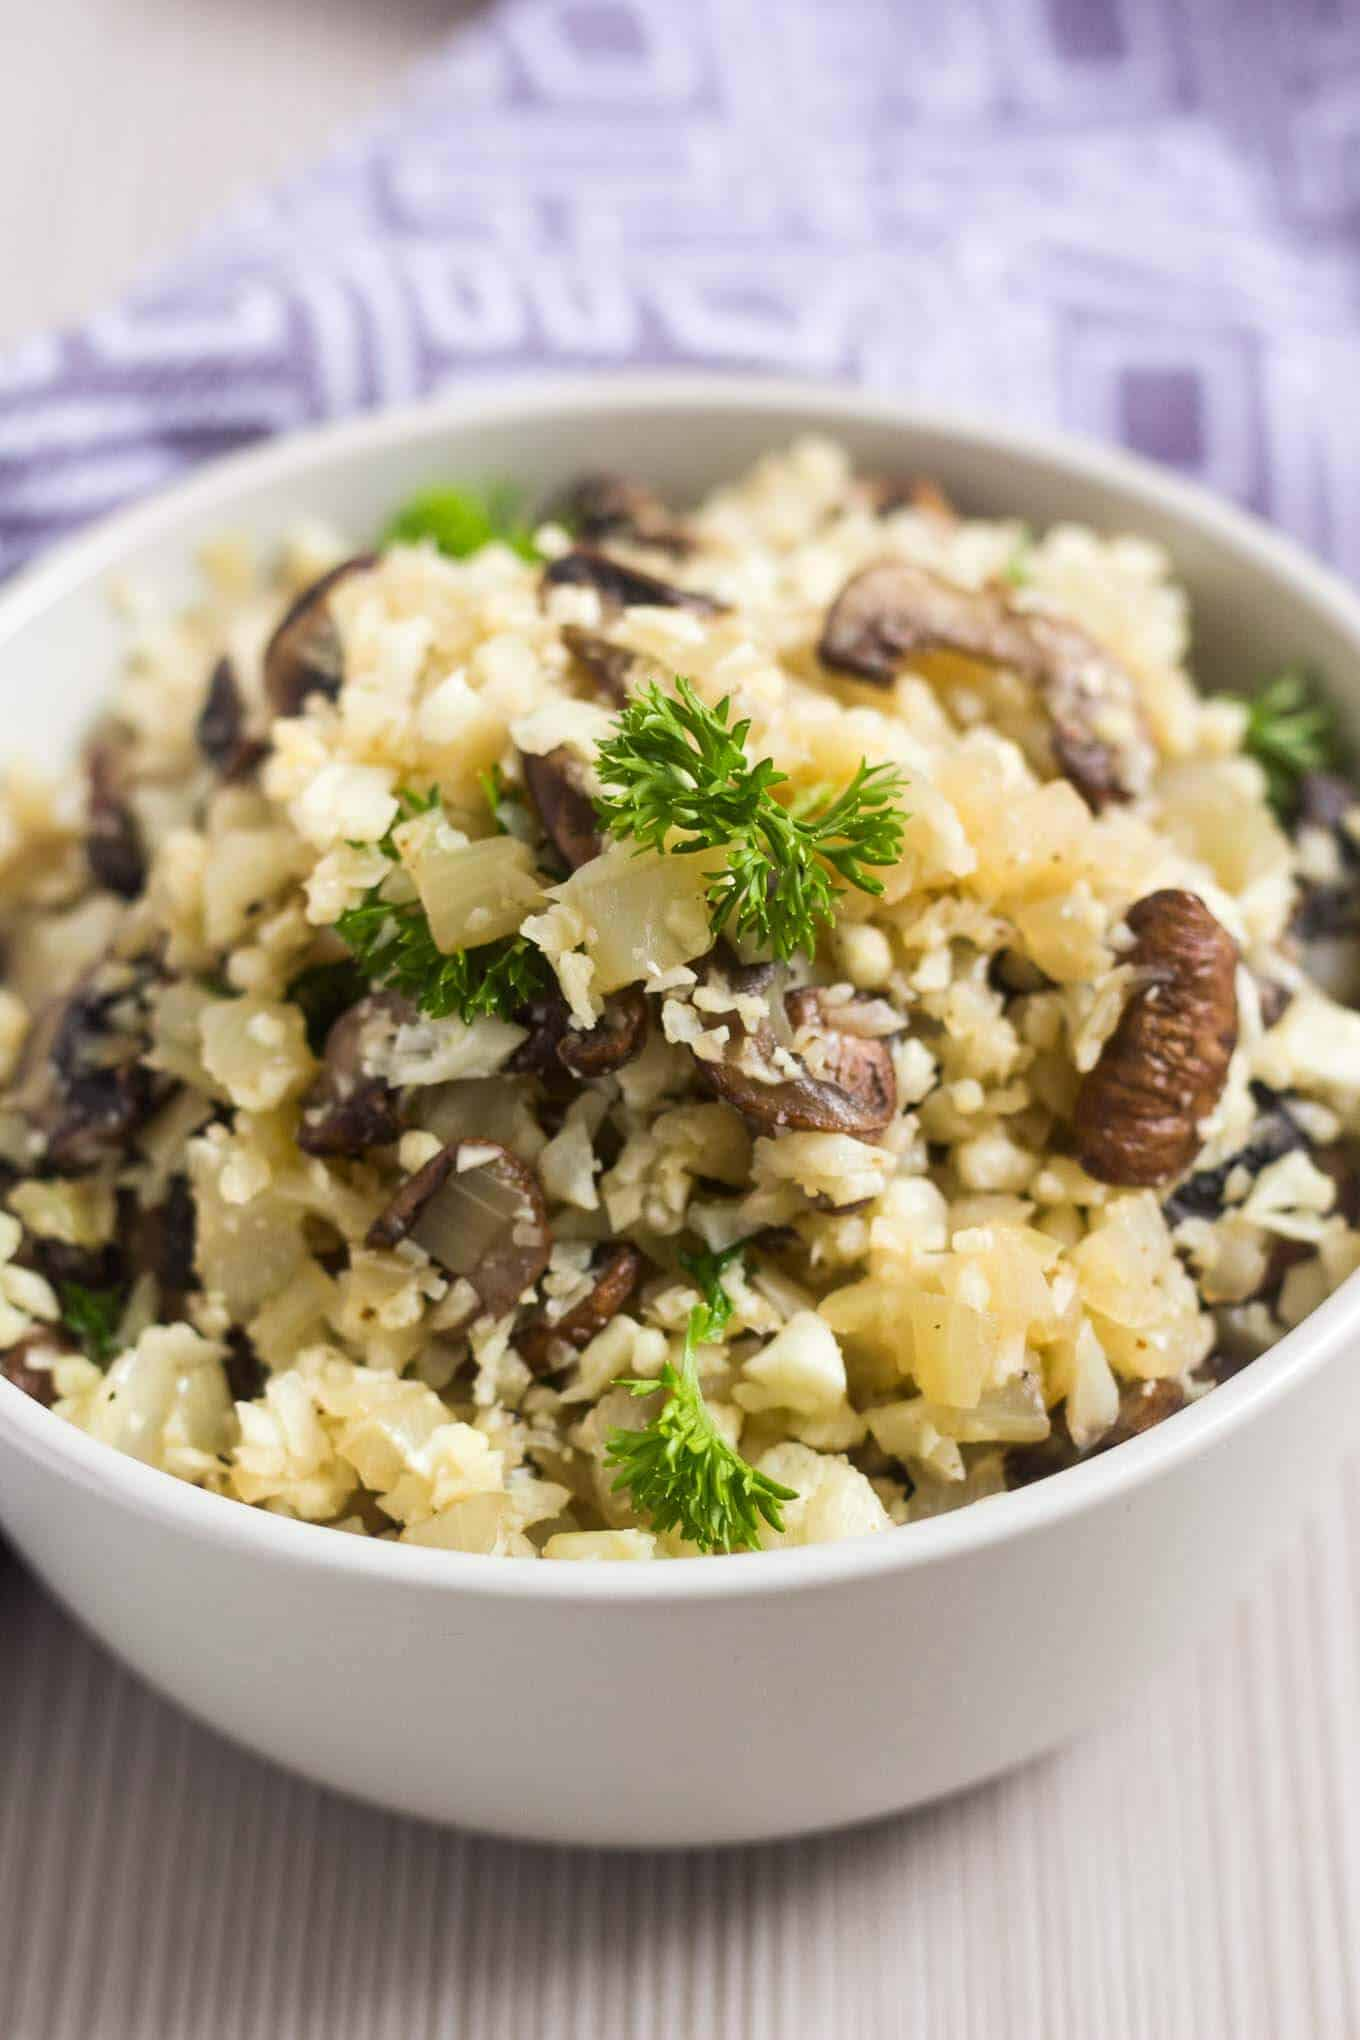 A bowl filled with mushroom cauliflower rice